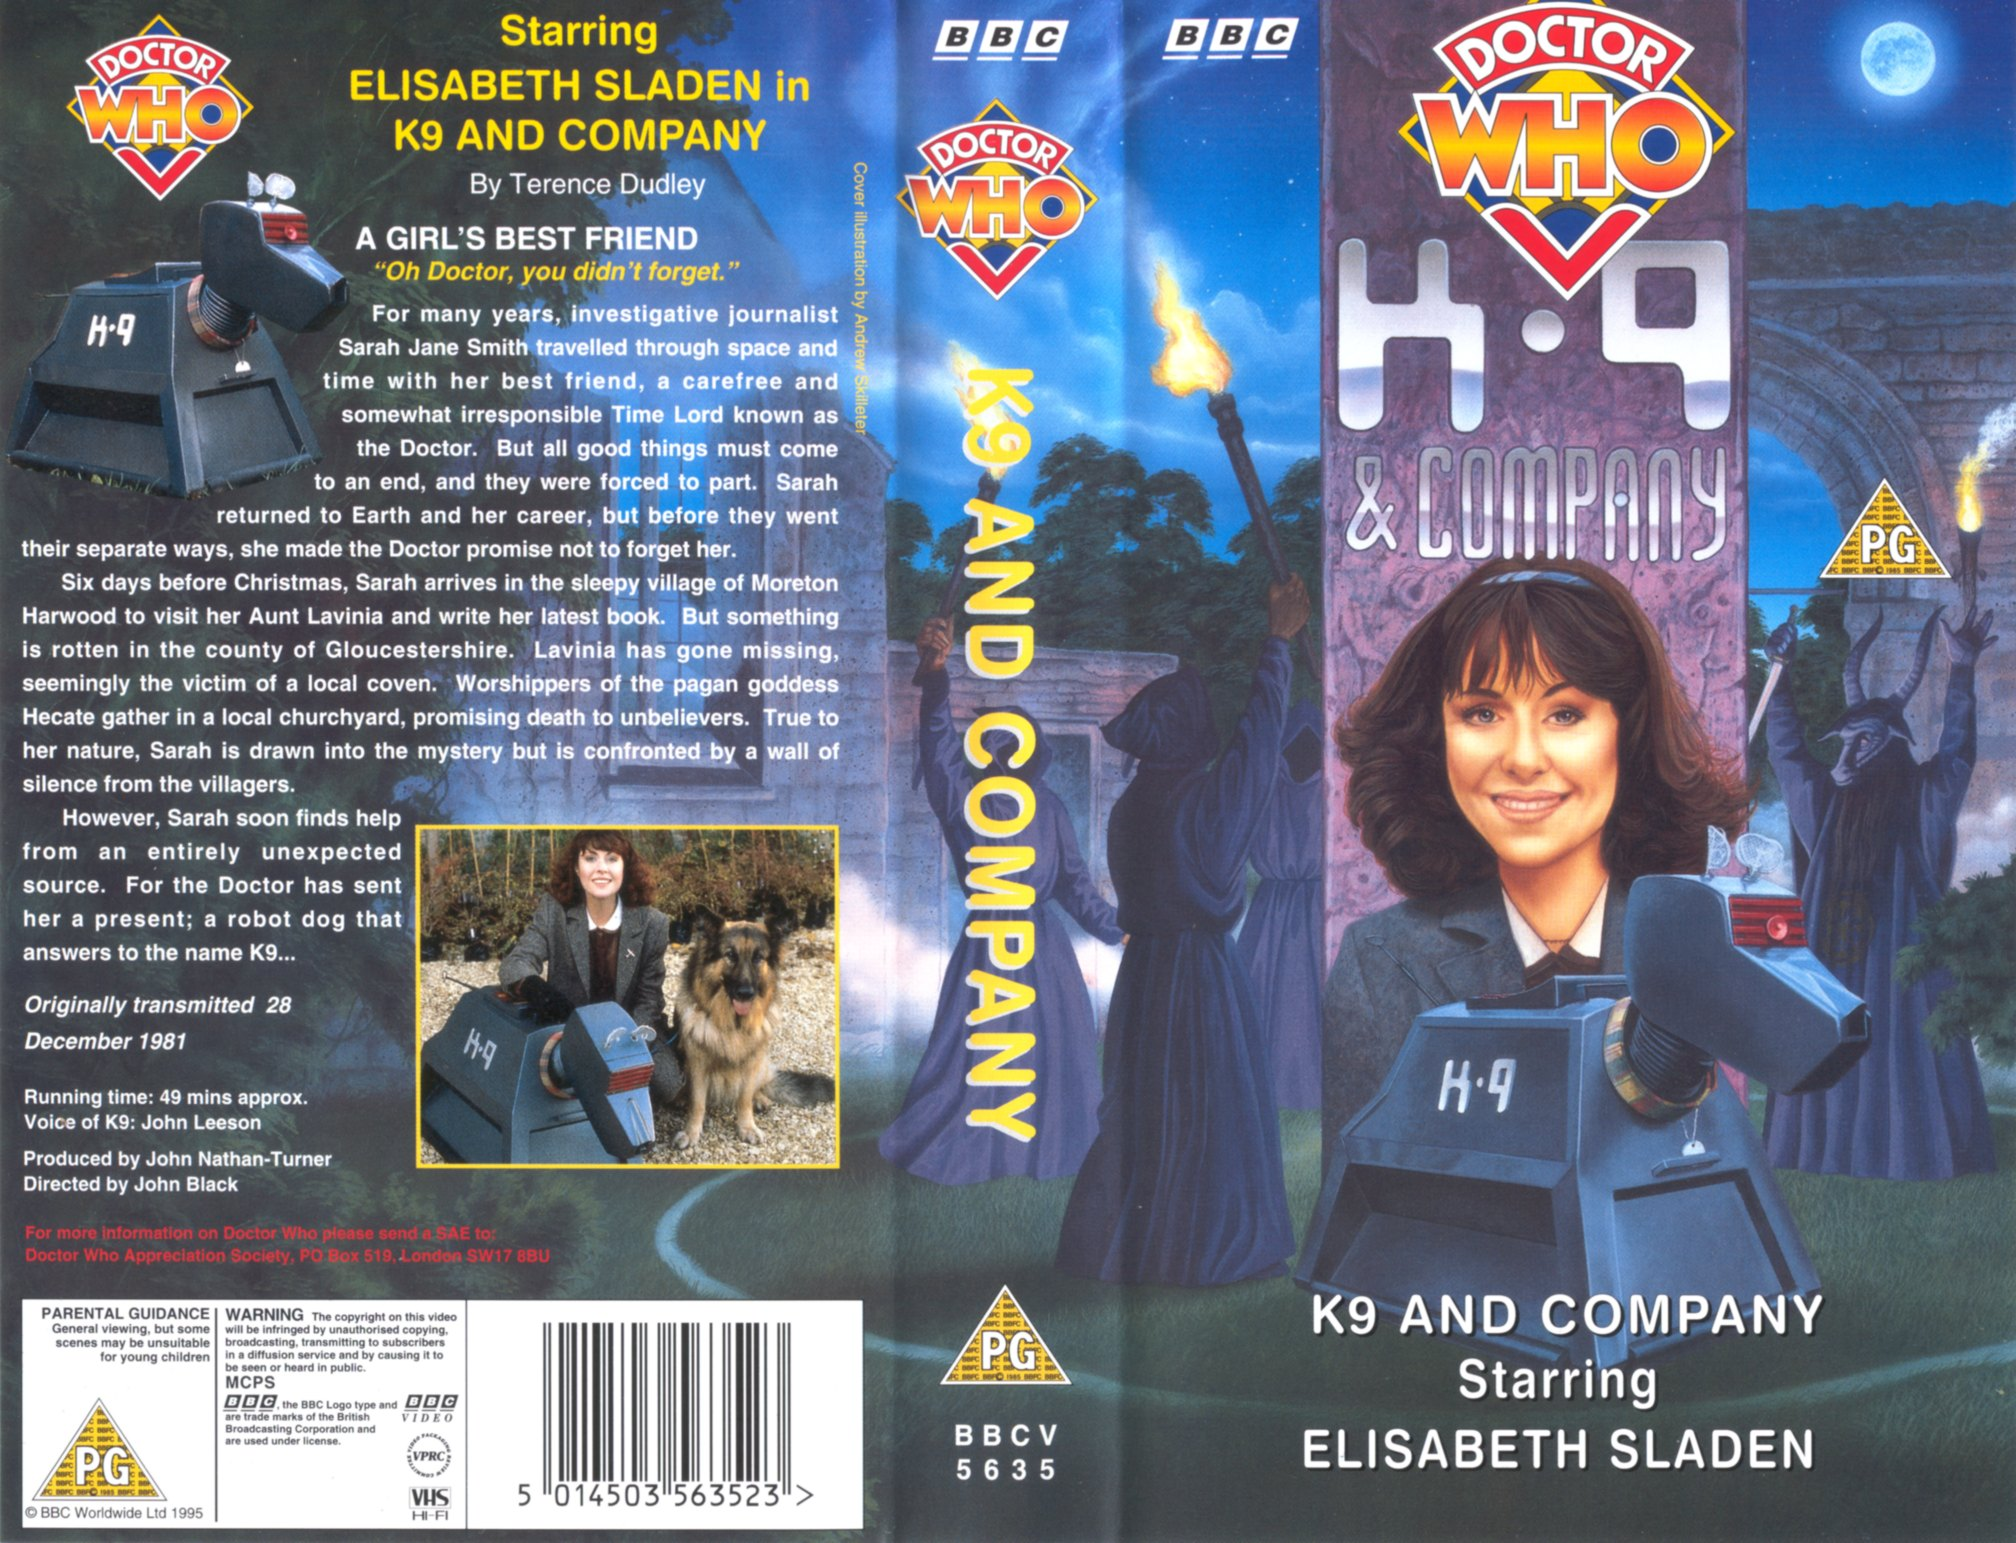 k9 and company covers